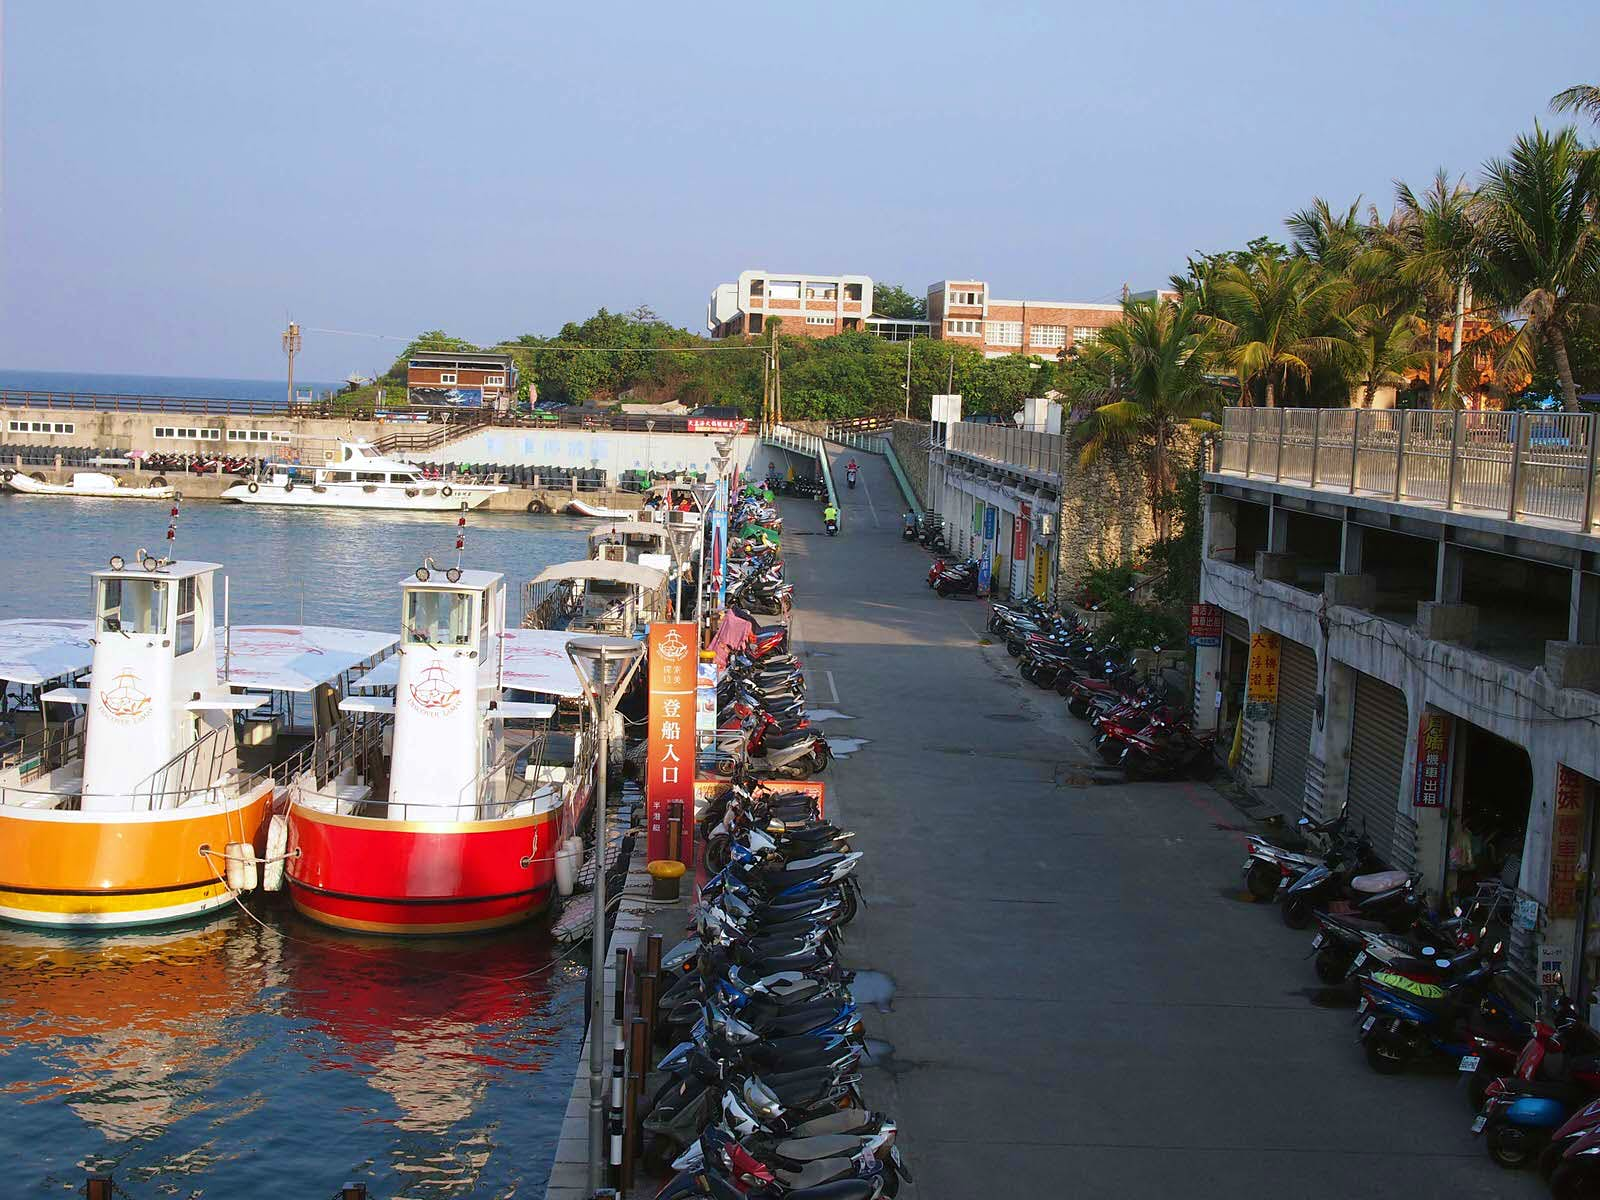 A view of the harbour with docked boats and scooters parked along the waterside. It's easy to hire scooters to get around Little Liuchiu © Tess Humphrys / Lonely Planet